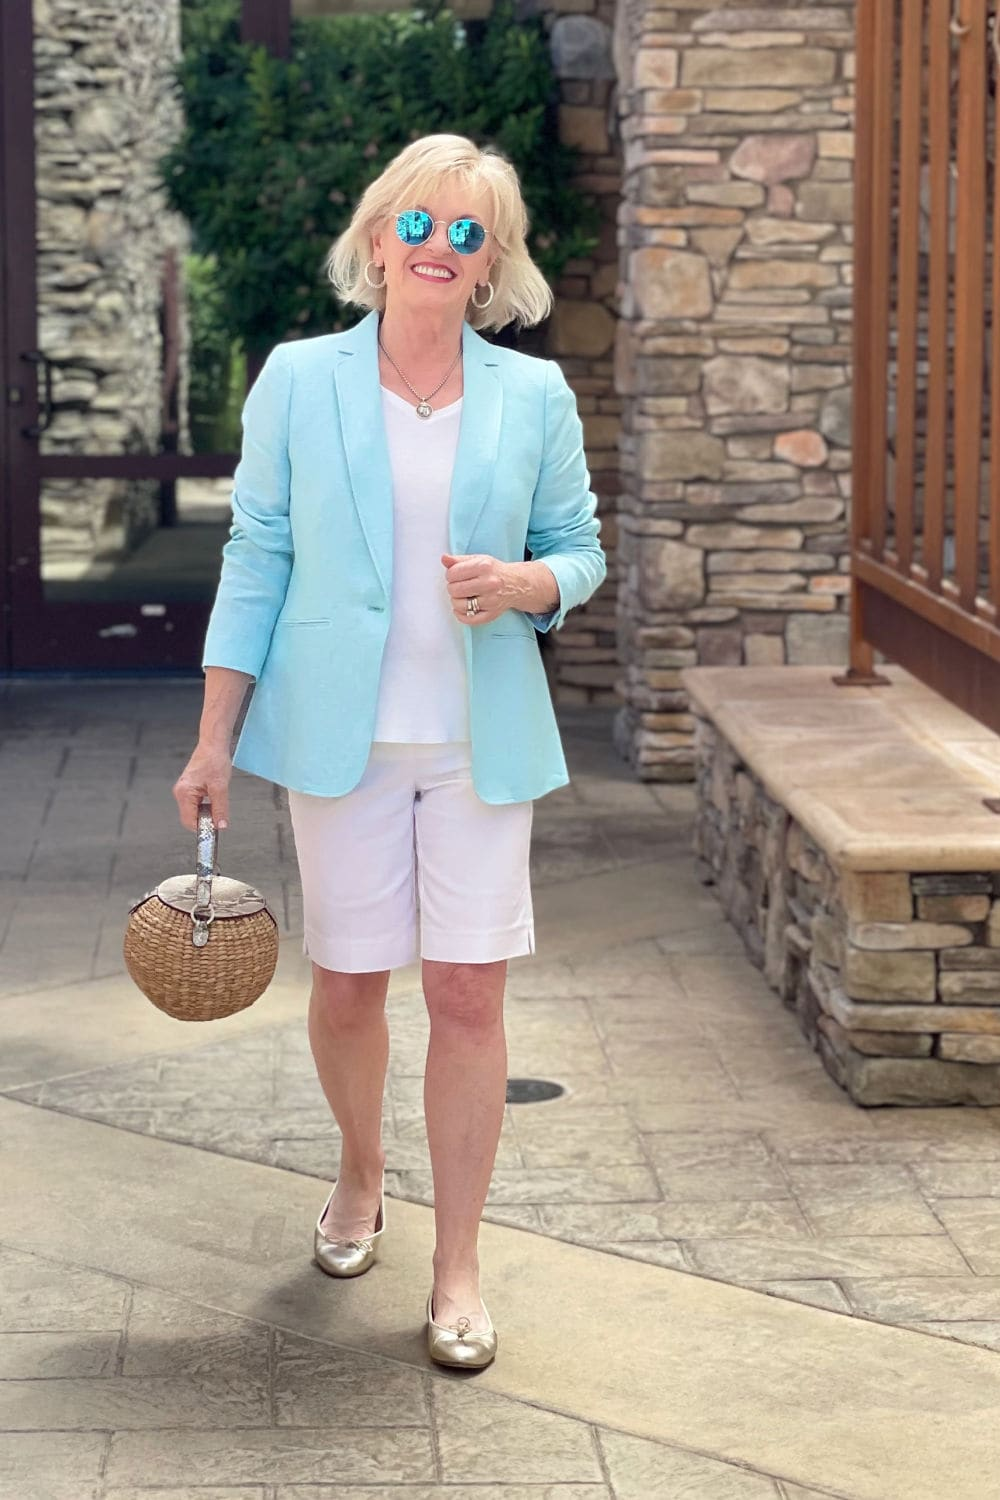 over 50 blogger walking toward the camera in linen blazer, gold flats and white shorts